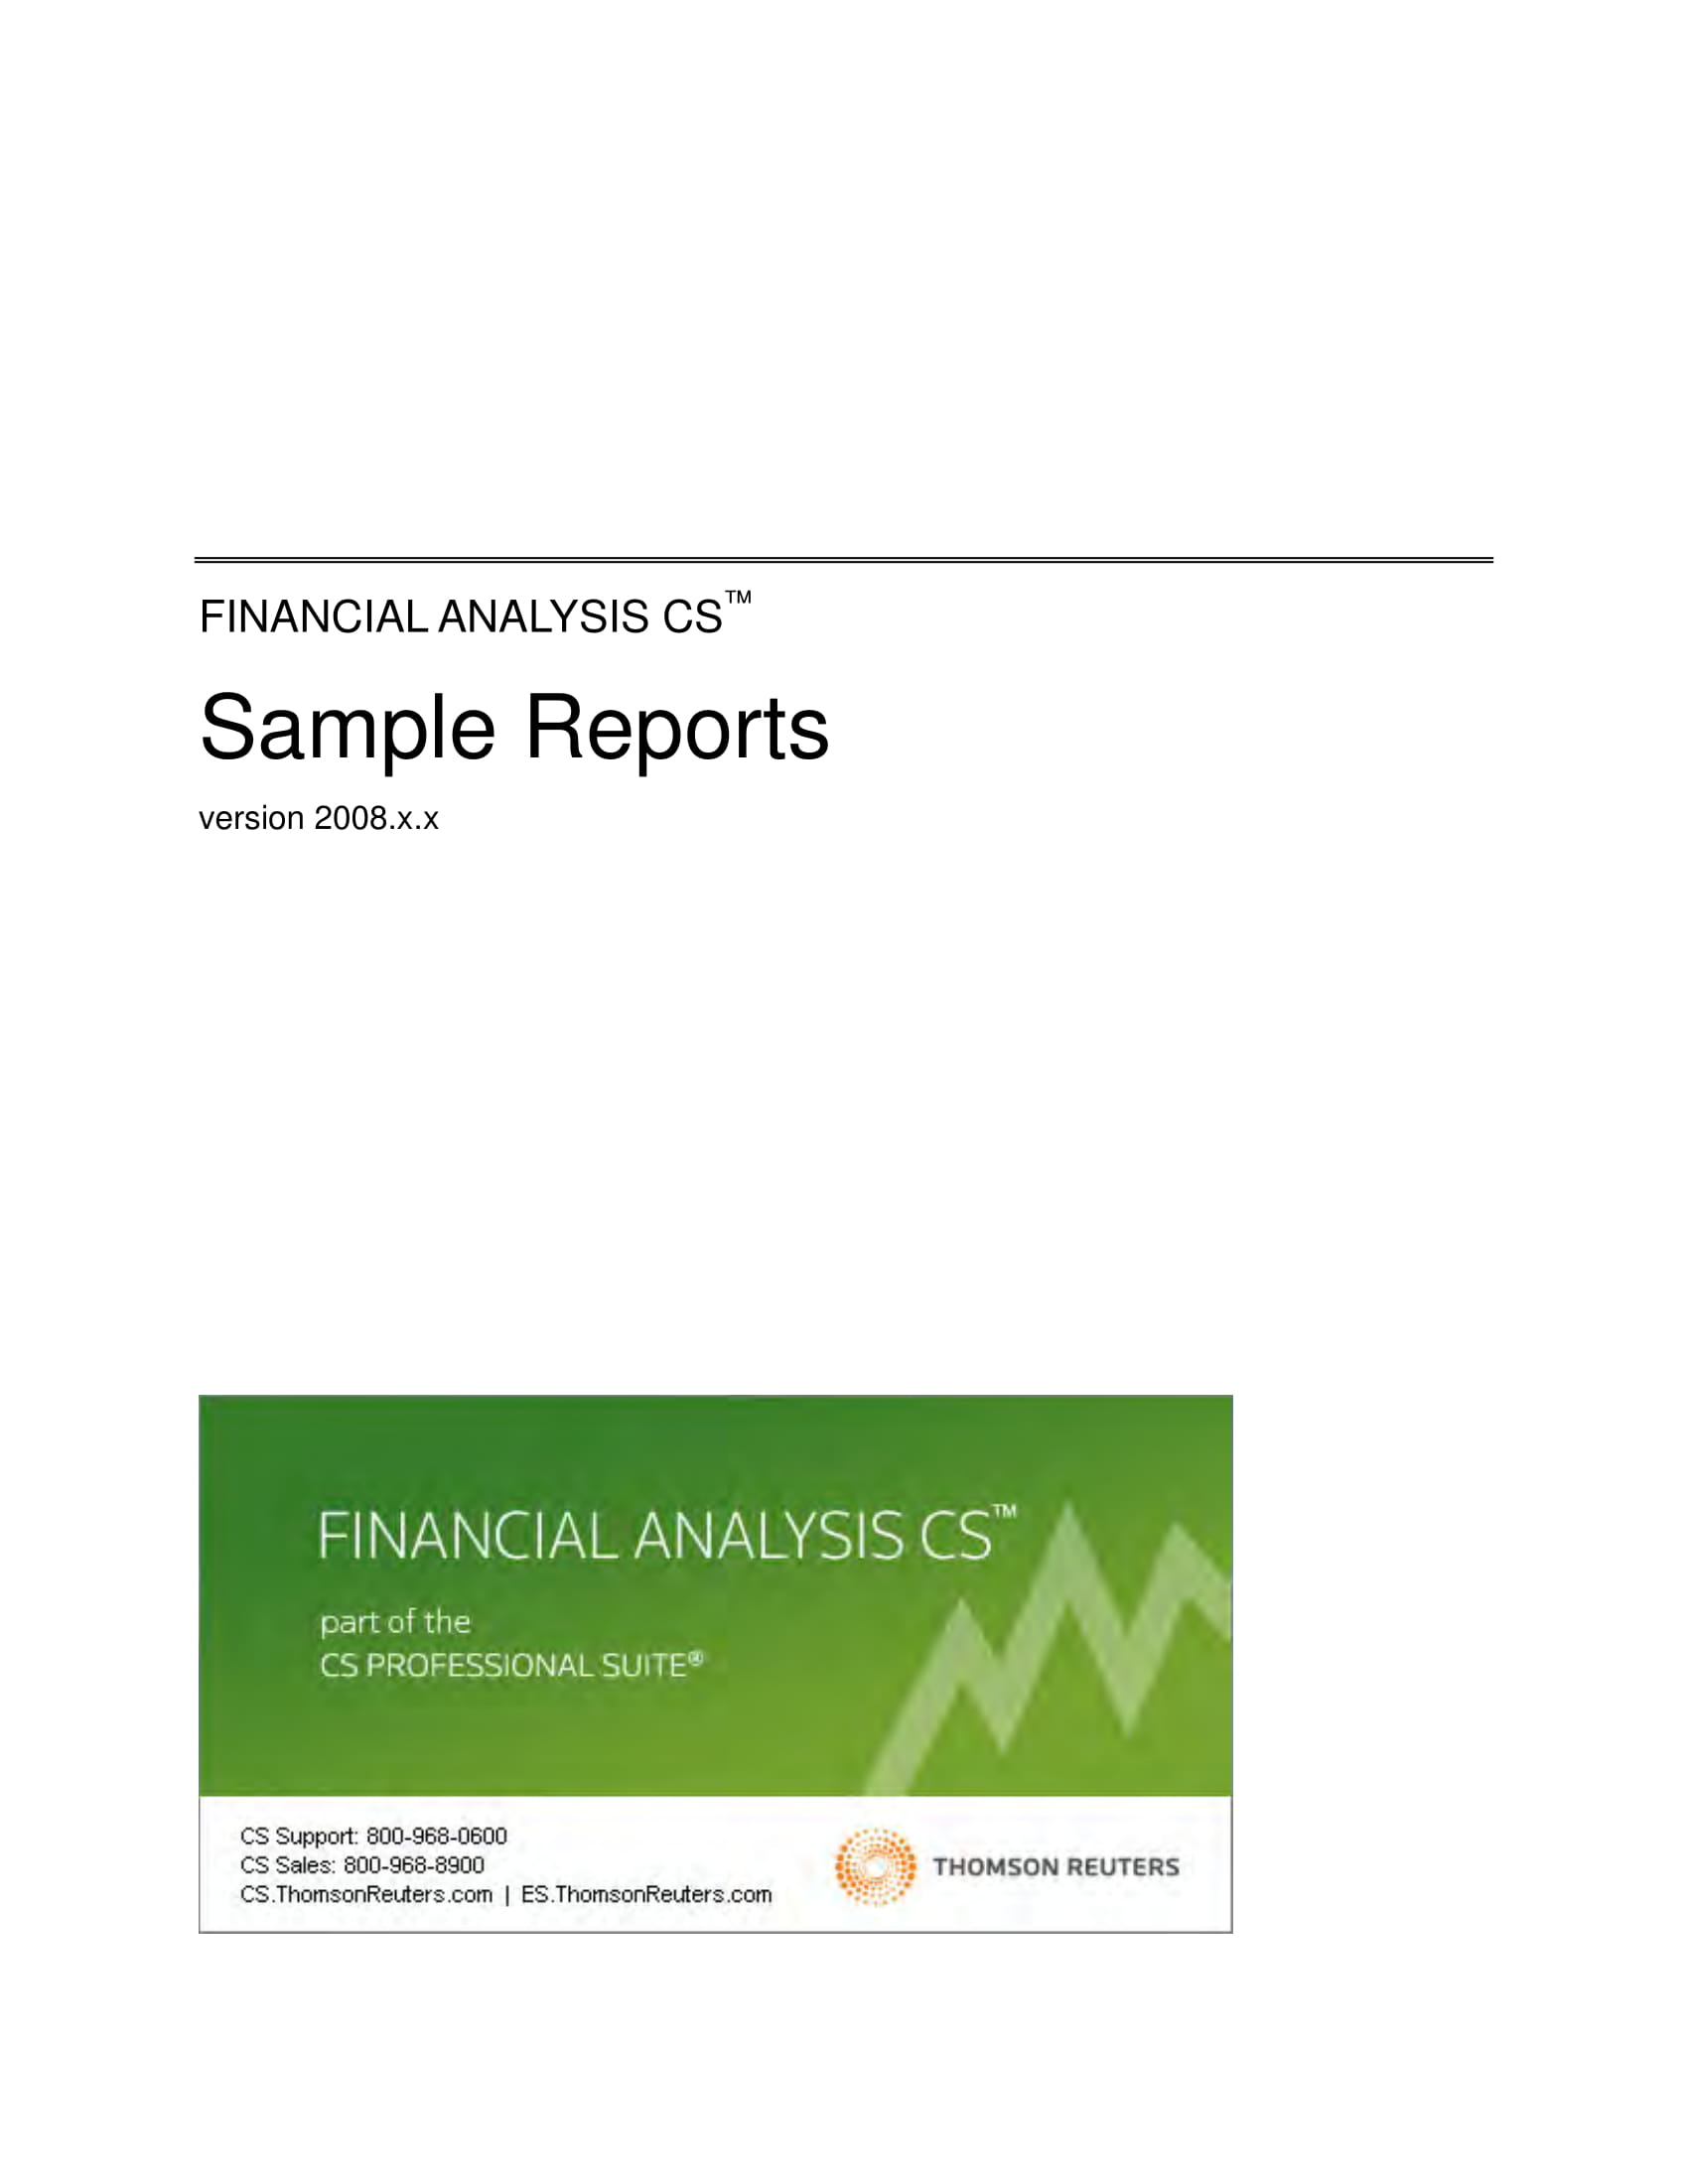 financial health analysis sample report example